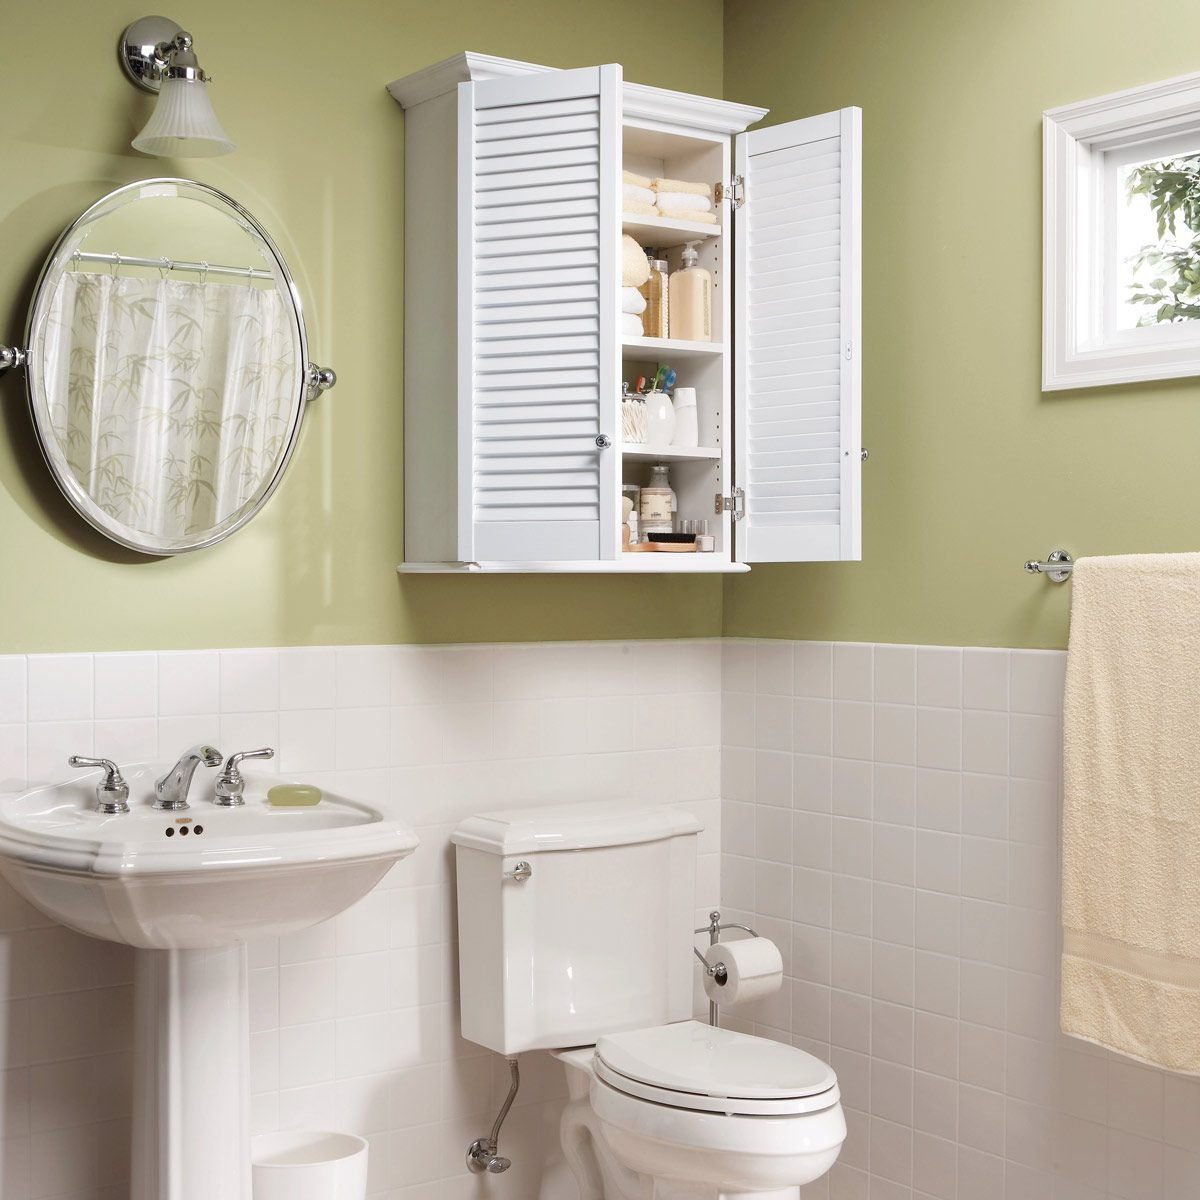 How to permanently anchor a bathroom towel bar family handyman make a super simple bath cabinet dailygadgetfo Choice Image